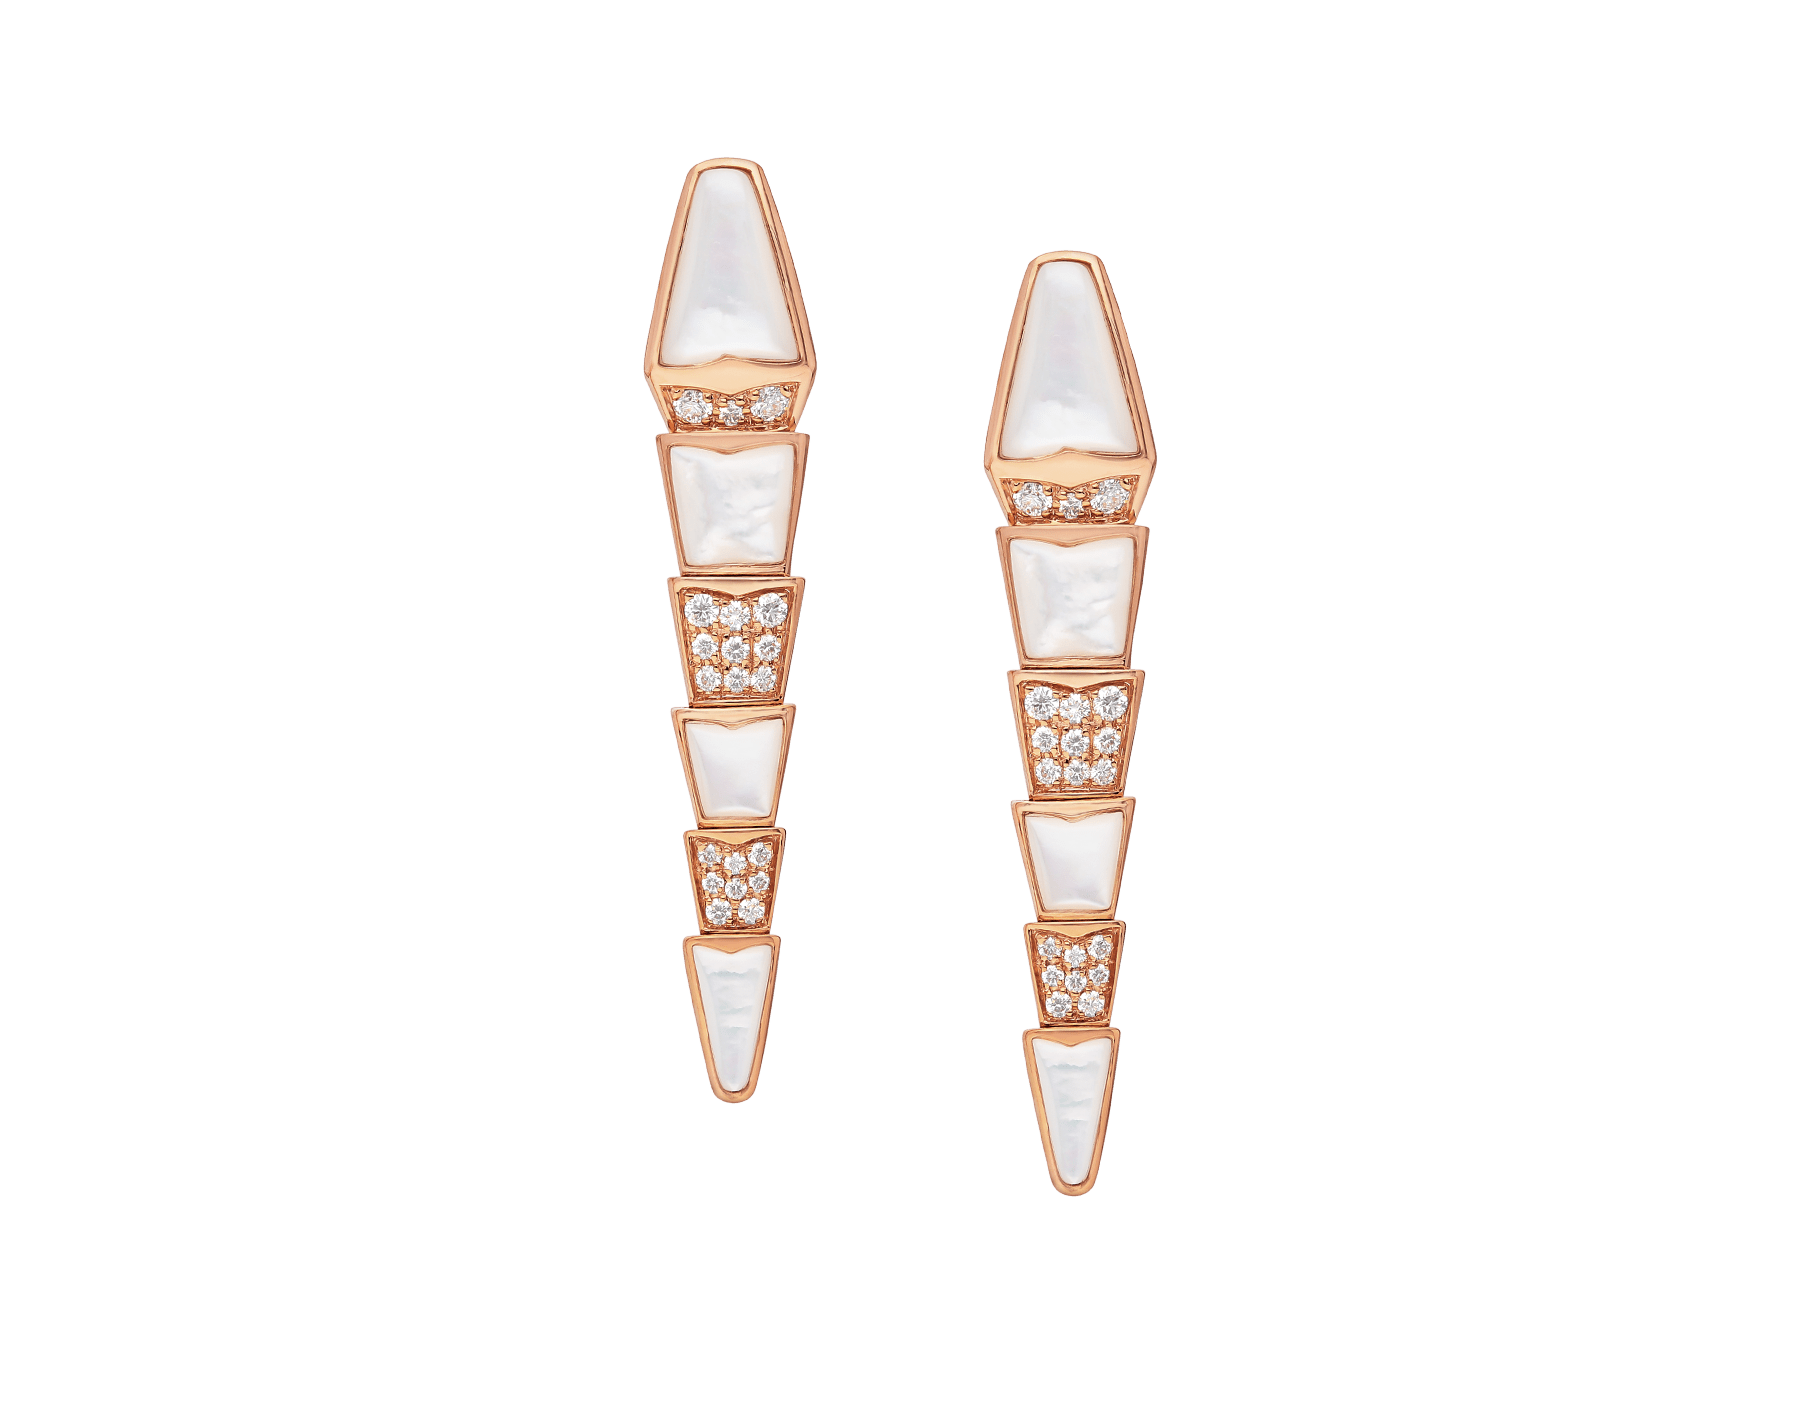 Serpenti earrings in 18 kt rose-gold set with mother-of-pearl elements and pavé diamonds. 350678 image 1